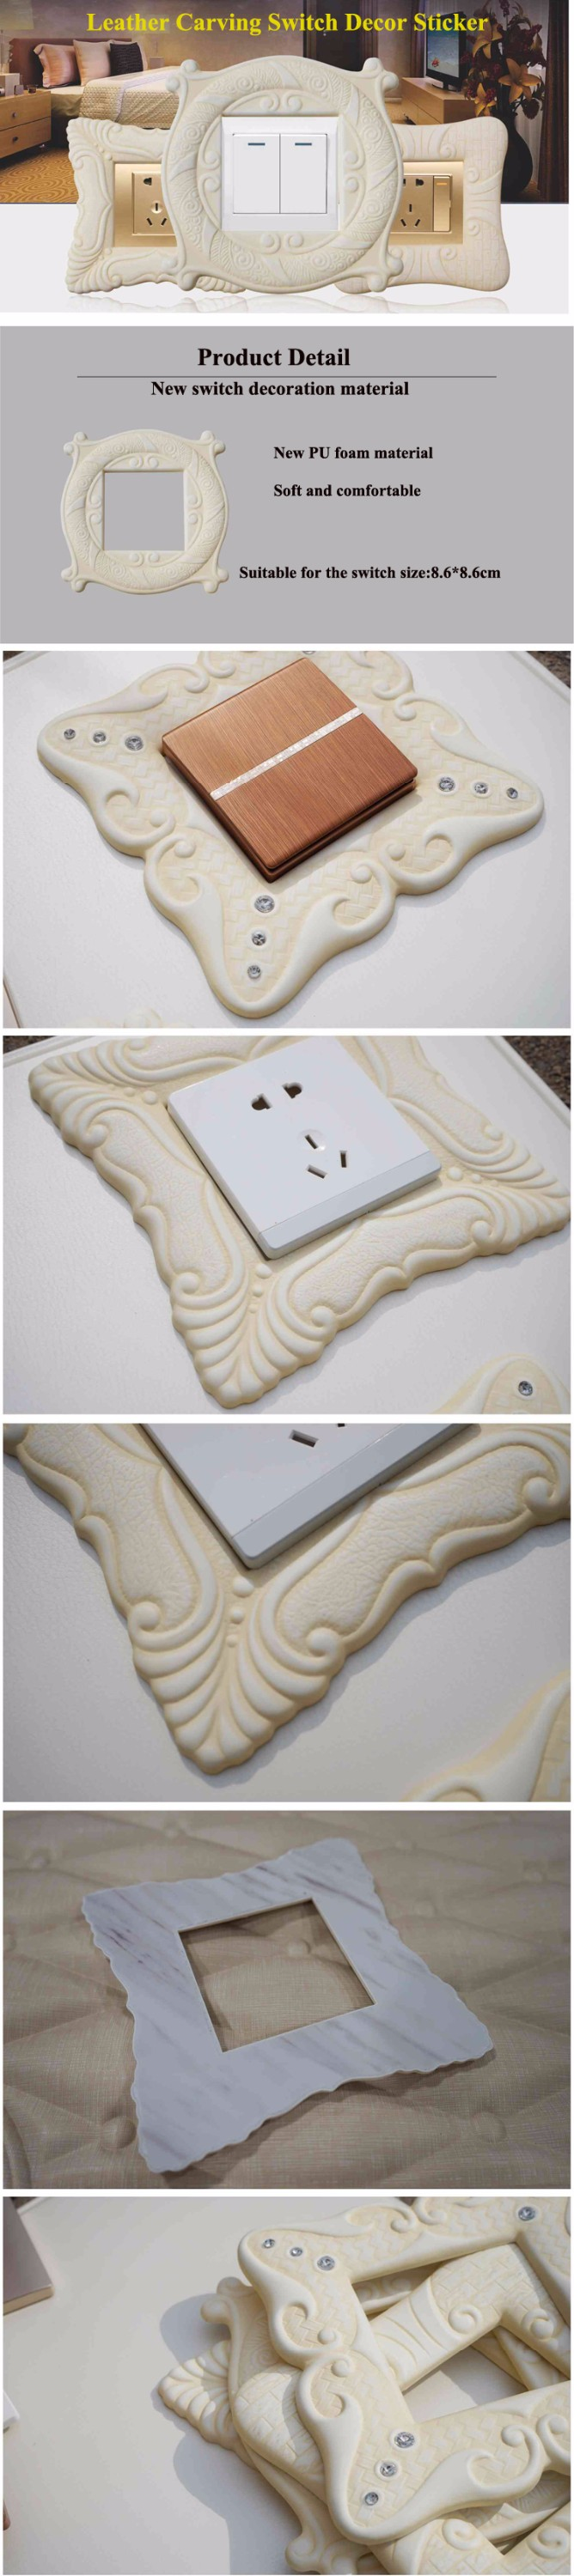 Home decoration PU leather carving Switch Sticker Decoration